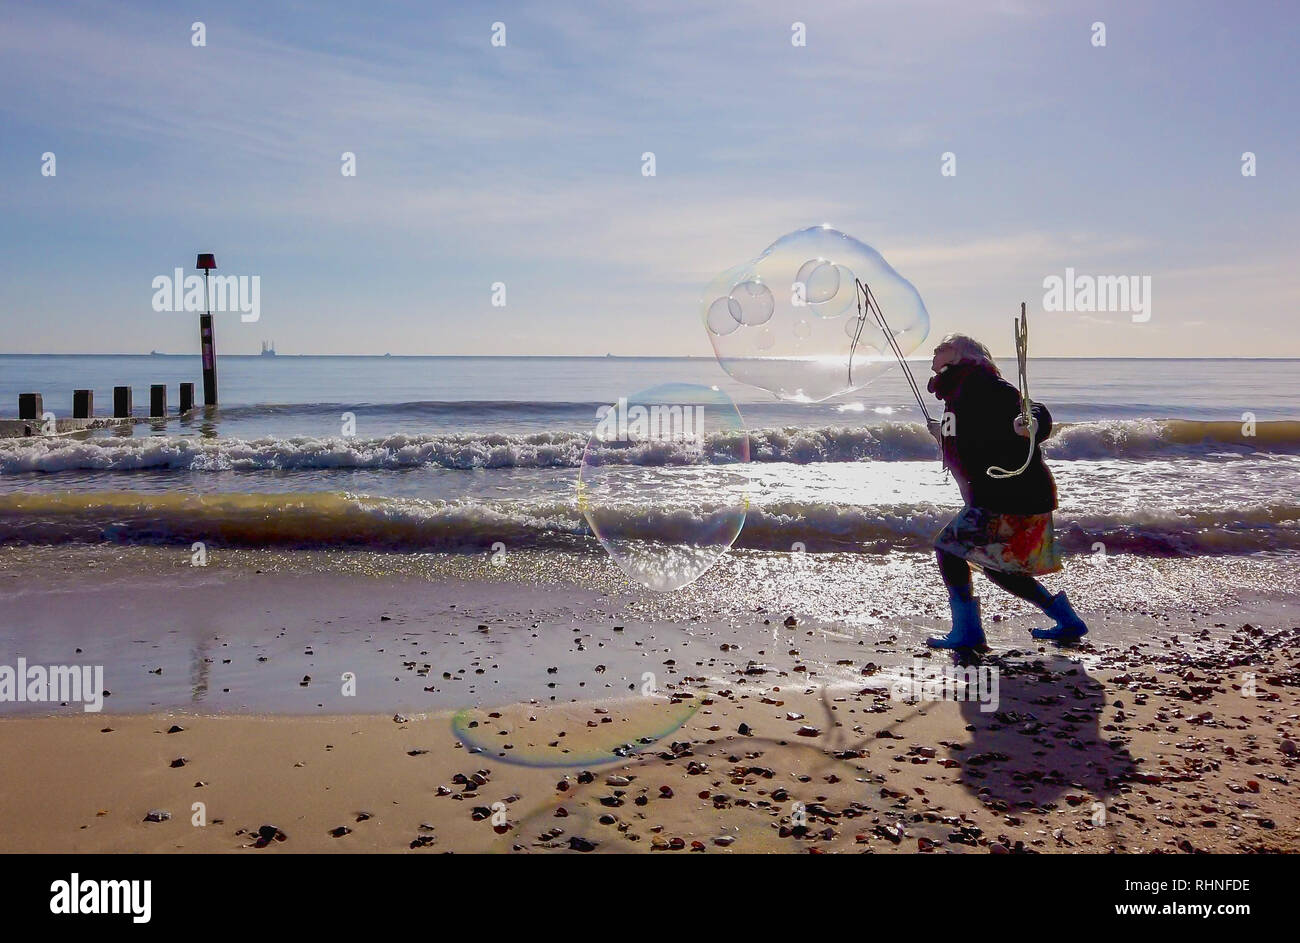 Bournemouth, UK. Sunday 3rd February 2019. A lady makes large bubbles on the beach in Bournemouth in Dorset, on a sunny winters day. Credit: Thomas Faull/Alamy Live News Stock Photo